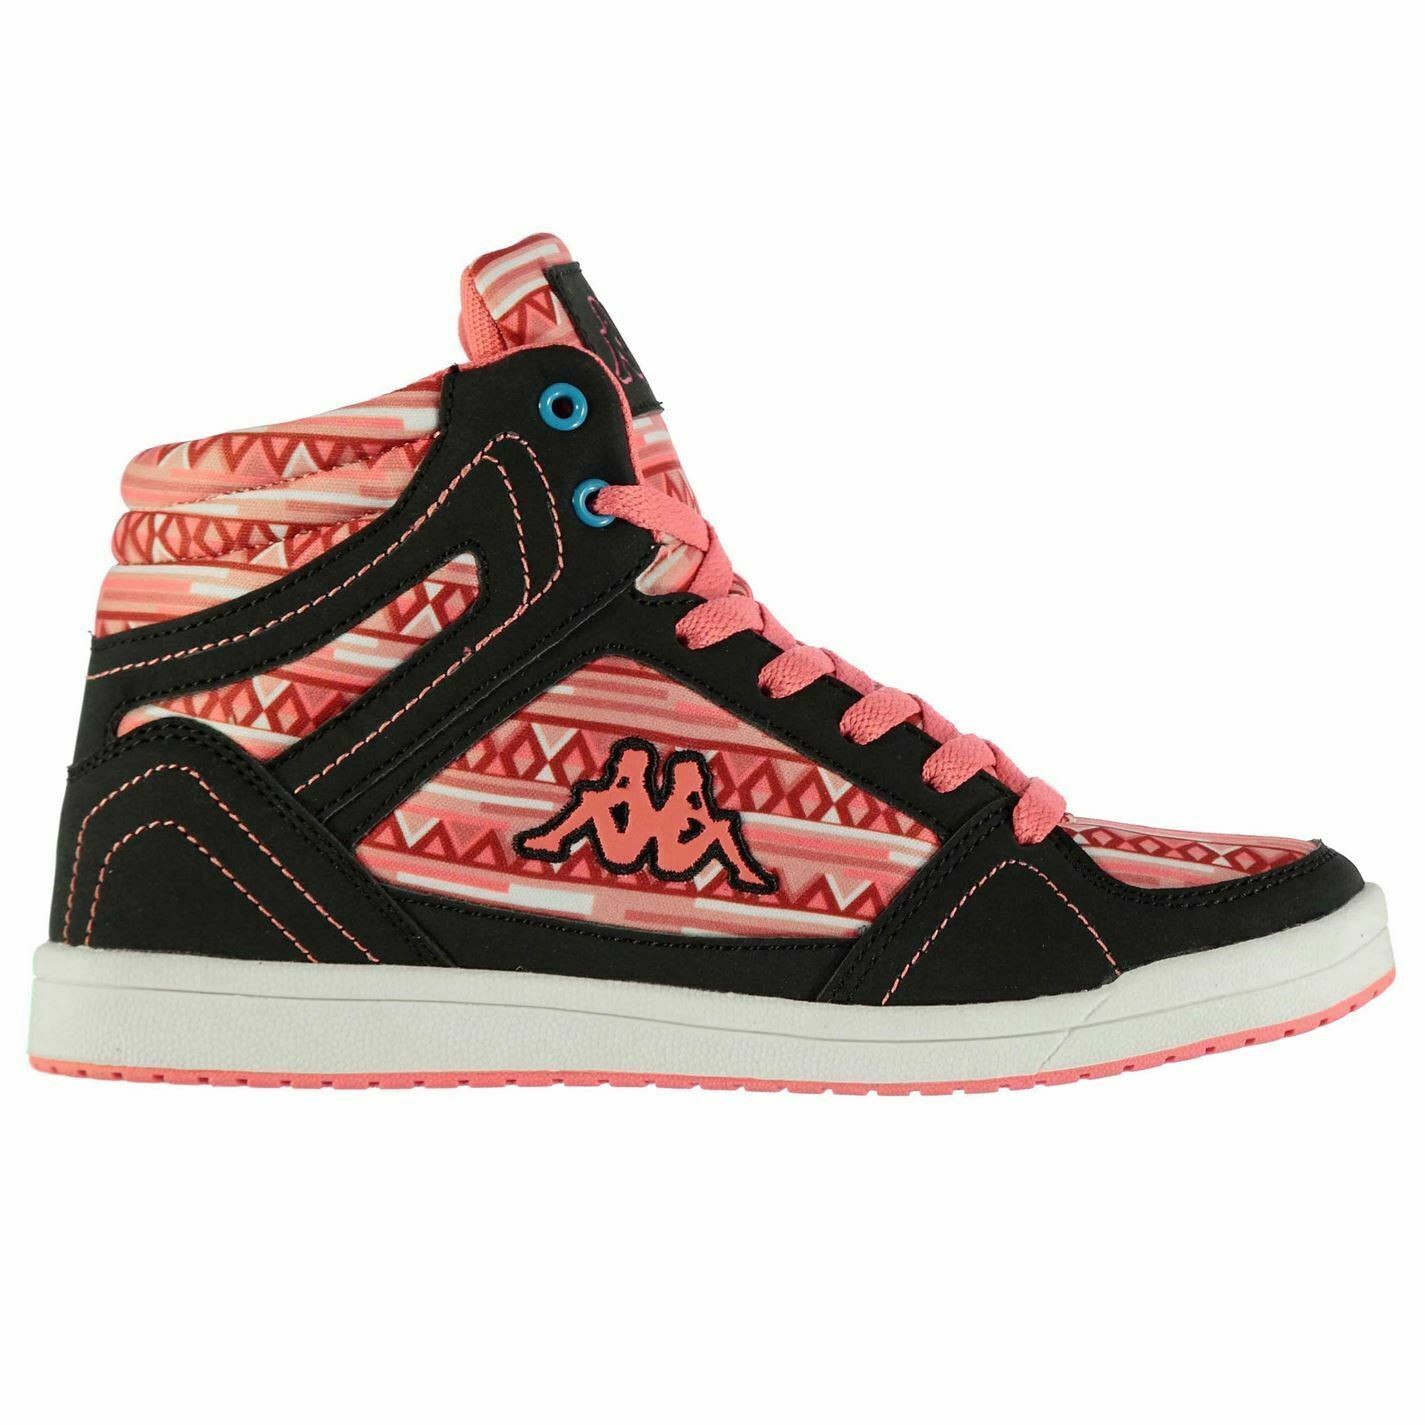 Kappa Coleos 7 Hi Top Trainers Womens Pink Navy Sports Trainers Sneakers